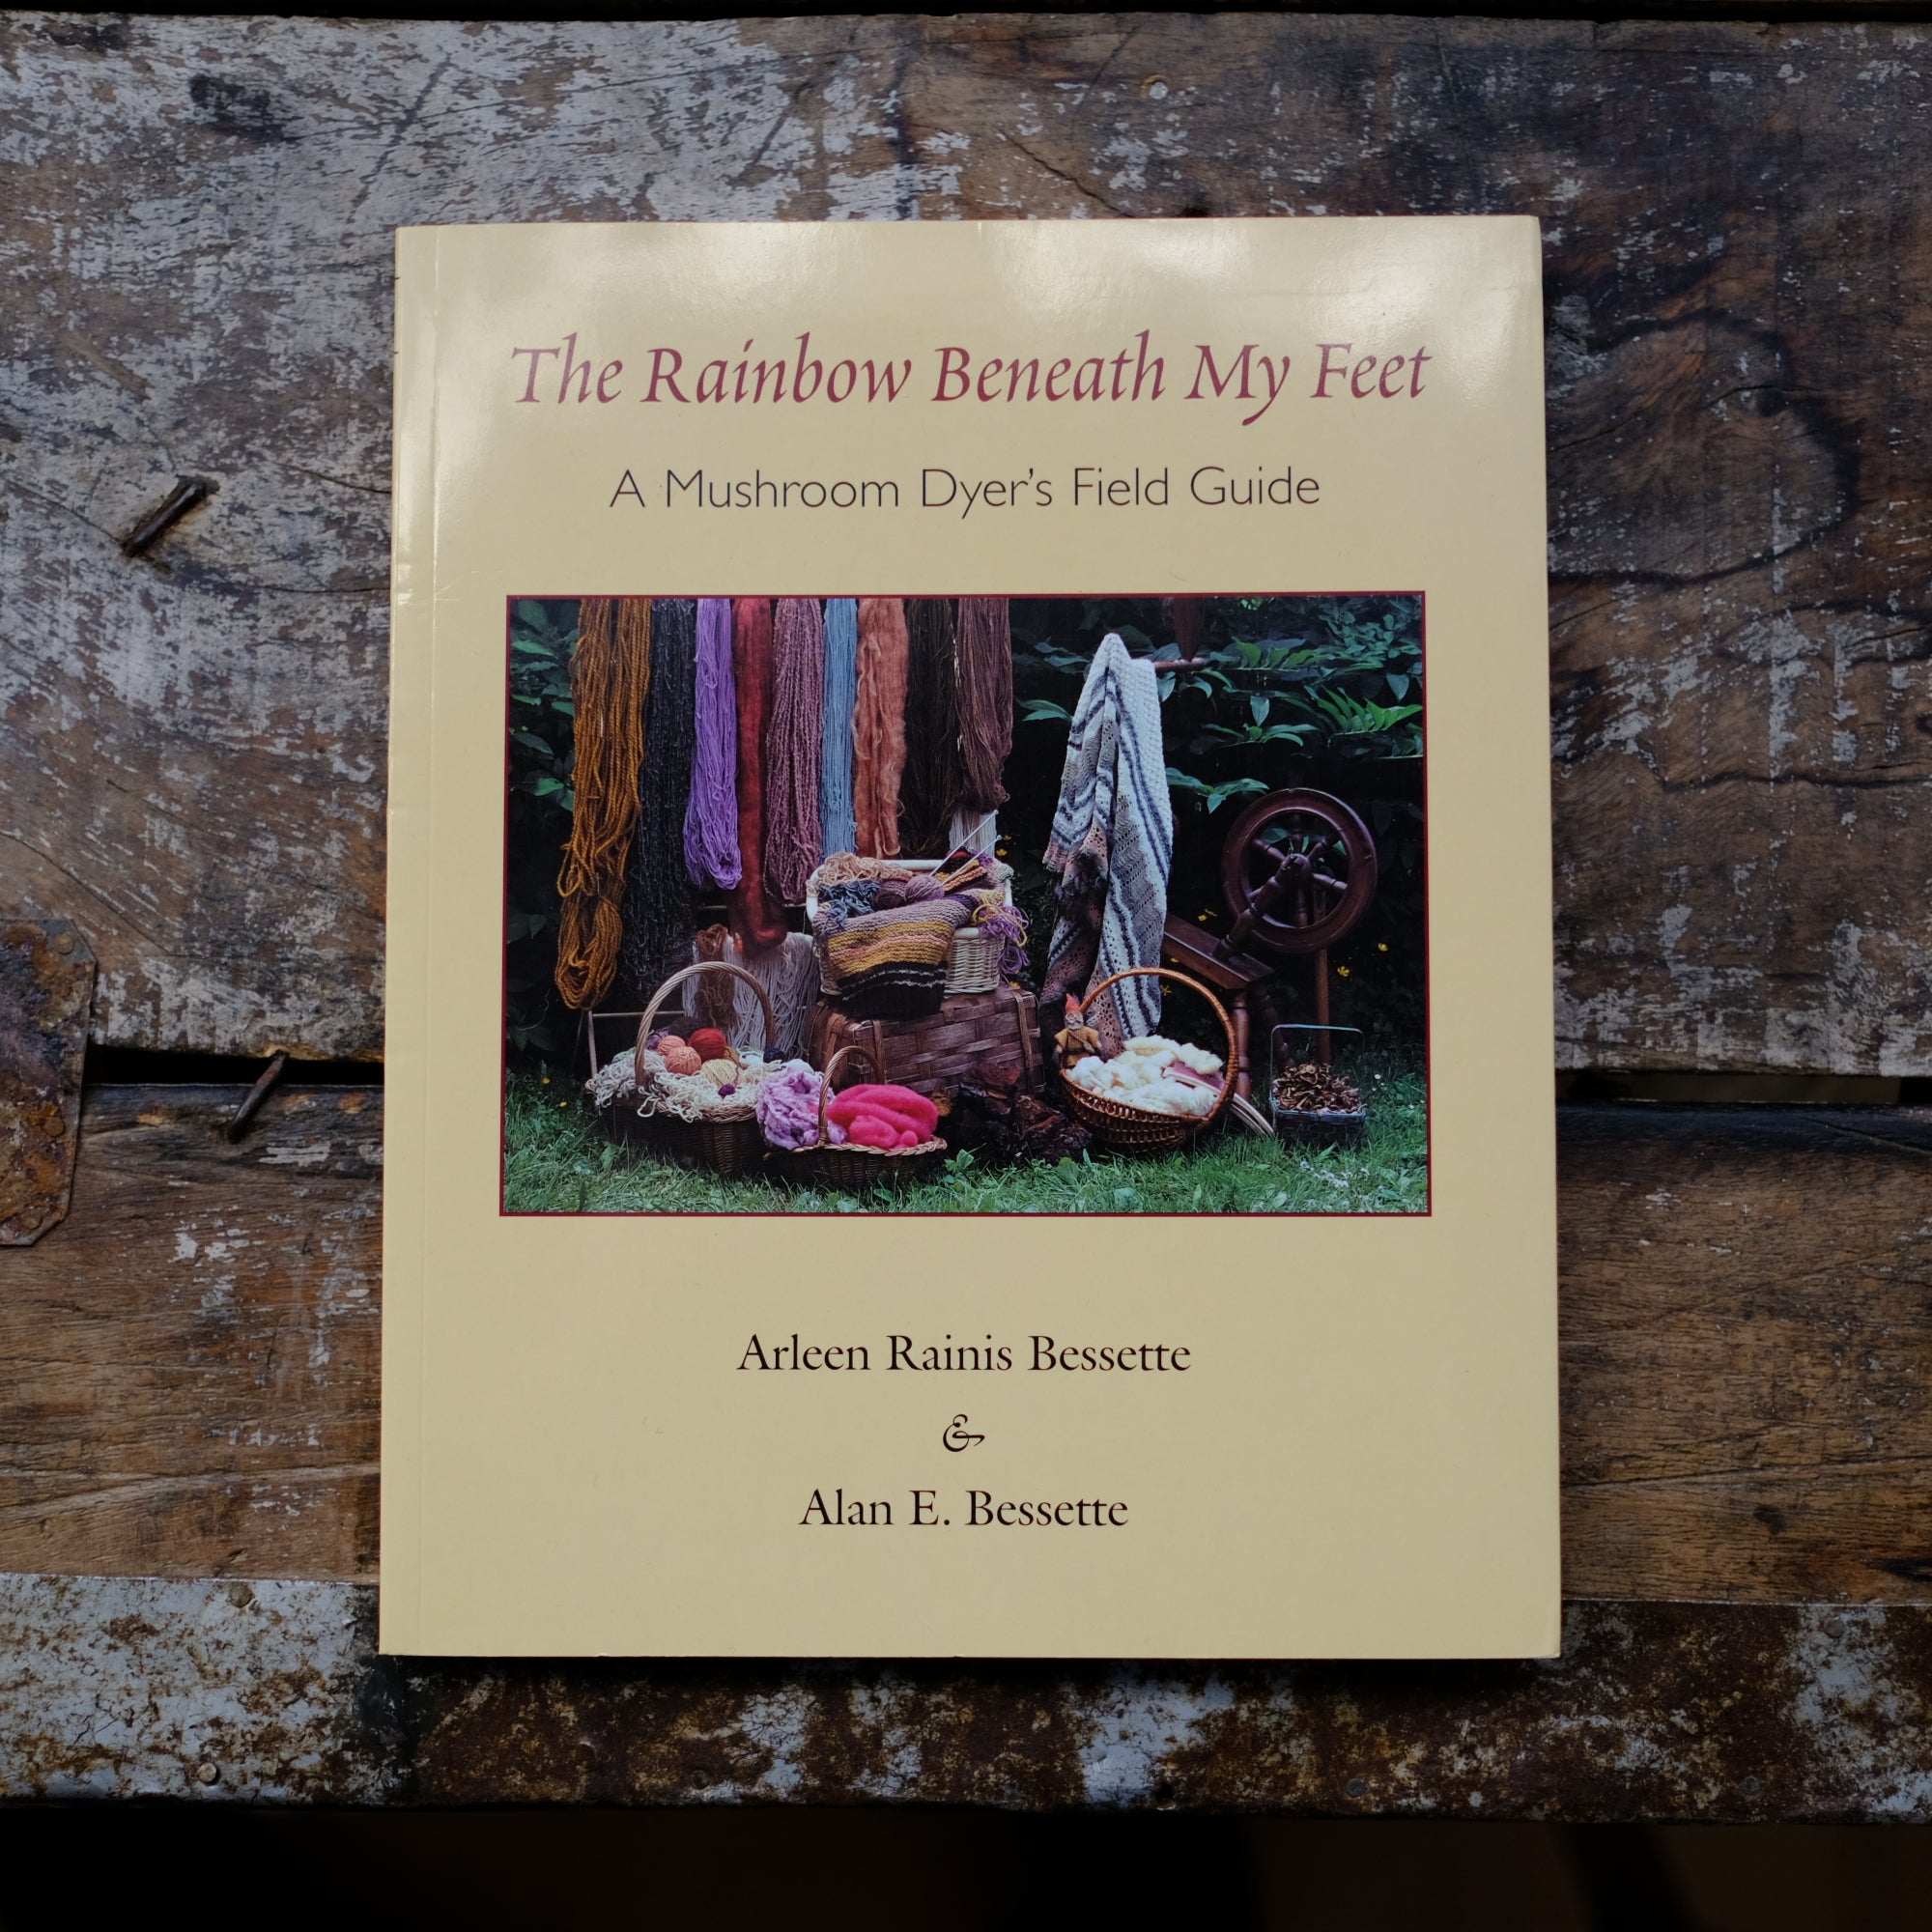 The Rainbow Beneath My Feet: A Mushroom Dyer's Field Guide by Arleen Rainis Bessette & Alan E. Bessette - COMING SOON